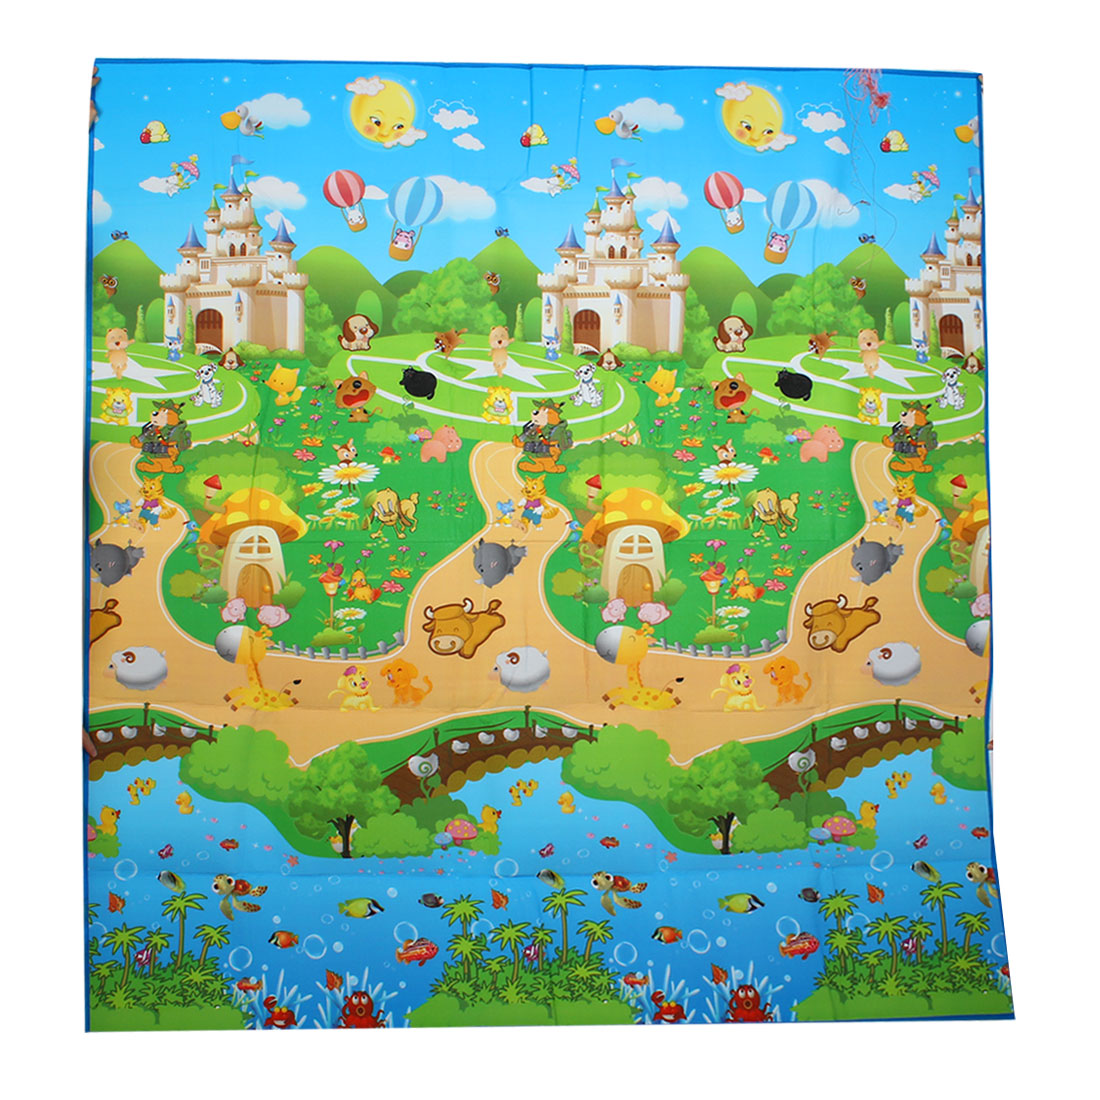 "Colorful Castle Animals Pattern Waterproof Baby Crawling Mat Pad 70"" x 70"""